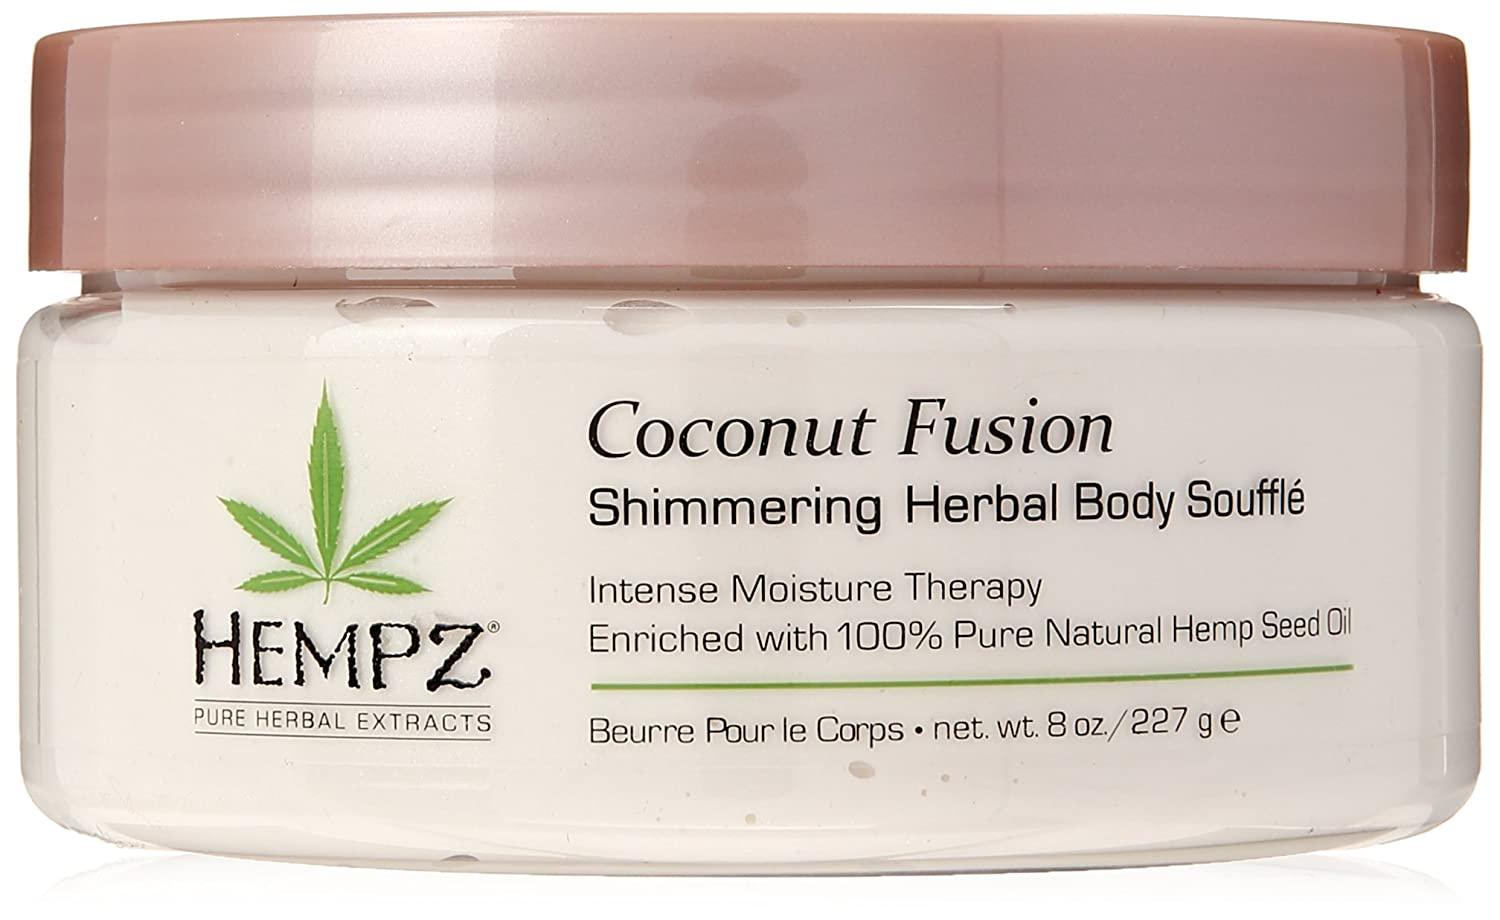 Hempz Coconut Fusion Herbal Shimmering Body Souffle